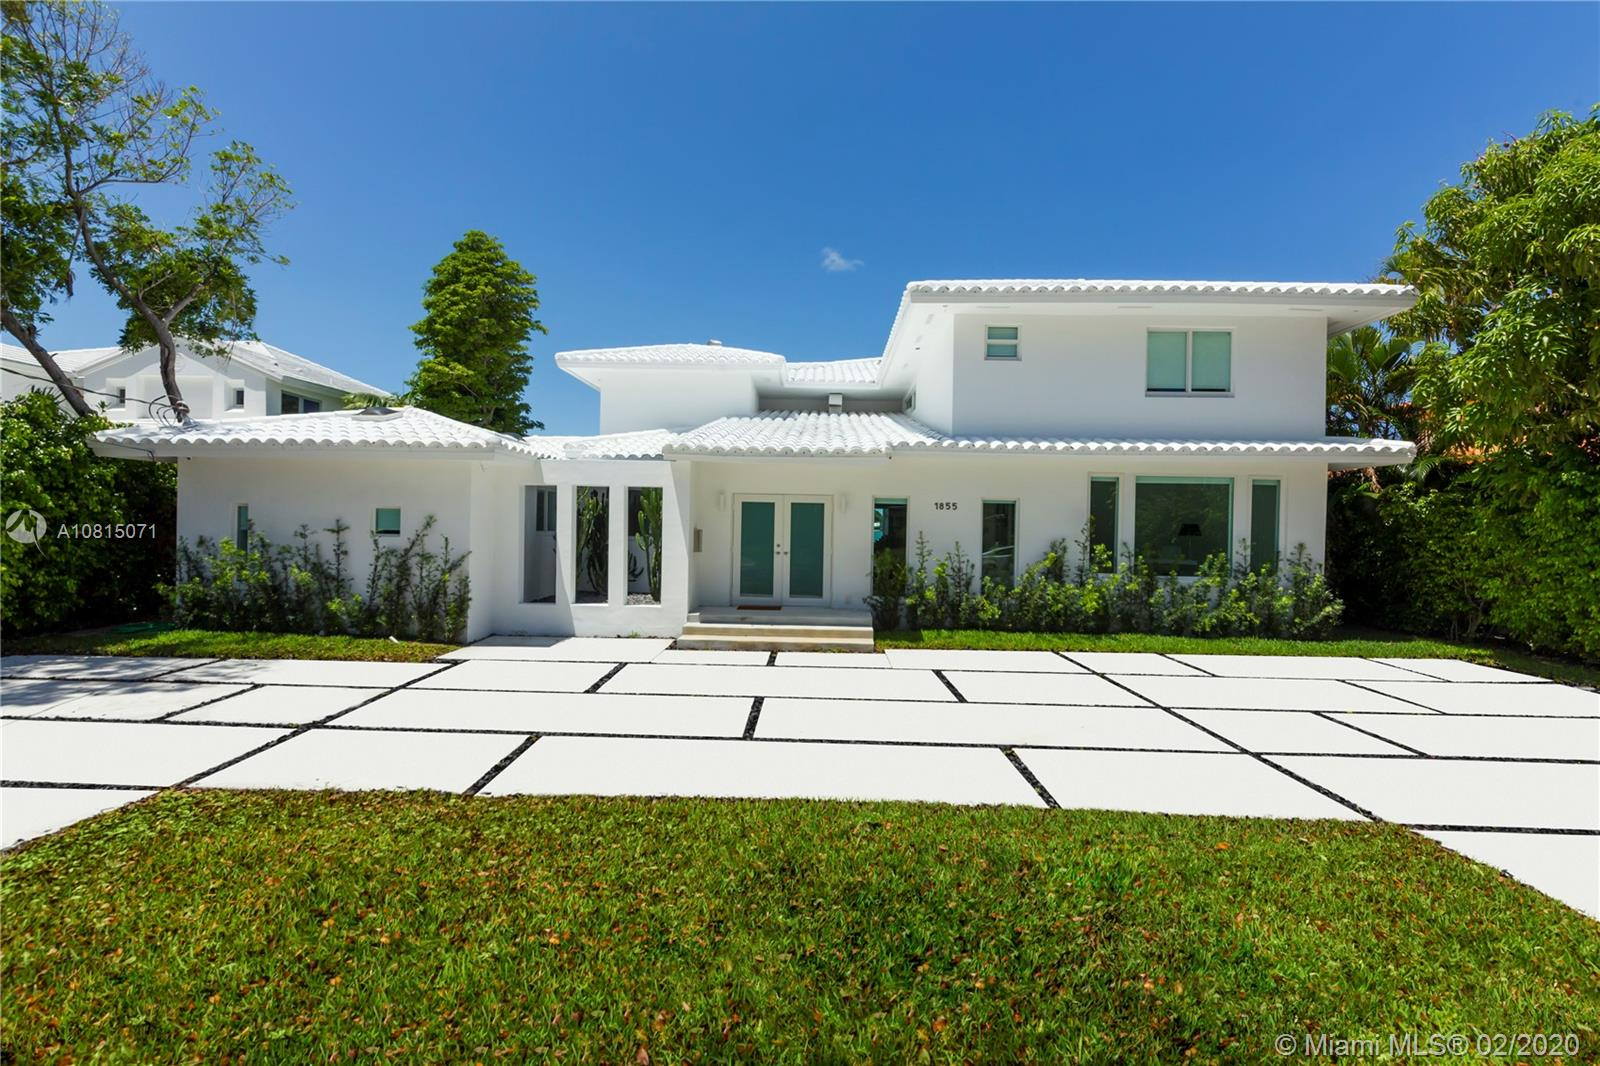 Finally available on the market ! On today most demanded island, Biscayne Point Miami-Beach, the only 2 story house with a complete open bay view. This 6 bedrooms 6 bathrooms home contains 5,000 sft on a 11,250 sft lot with 75 ft frontage + dock. Totally remodeled this bright home offers a perfect layout with open spaces, high end materials, and all the smart and entertainment functions. The lucky future Buyer will have one of the best piece of Biscayne point Island .